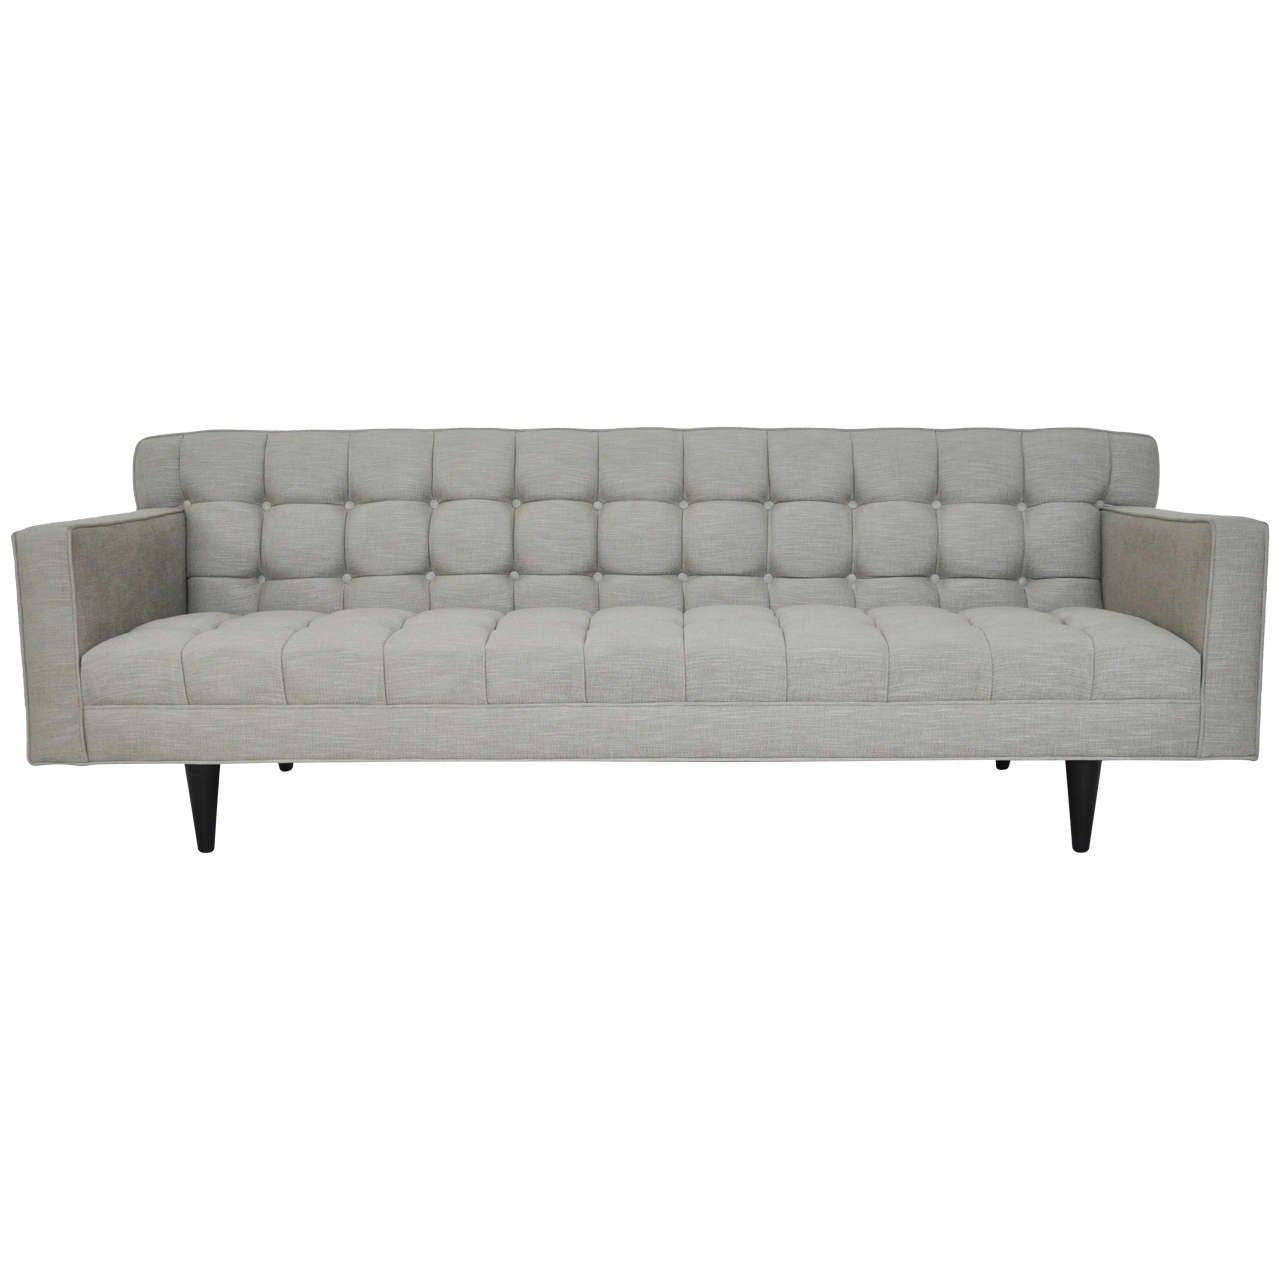 Dunbar Model 5136 Sofa by Edward Wormley For Sale